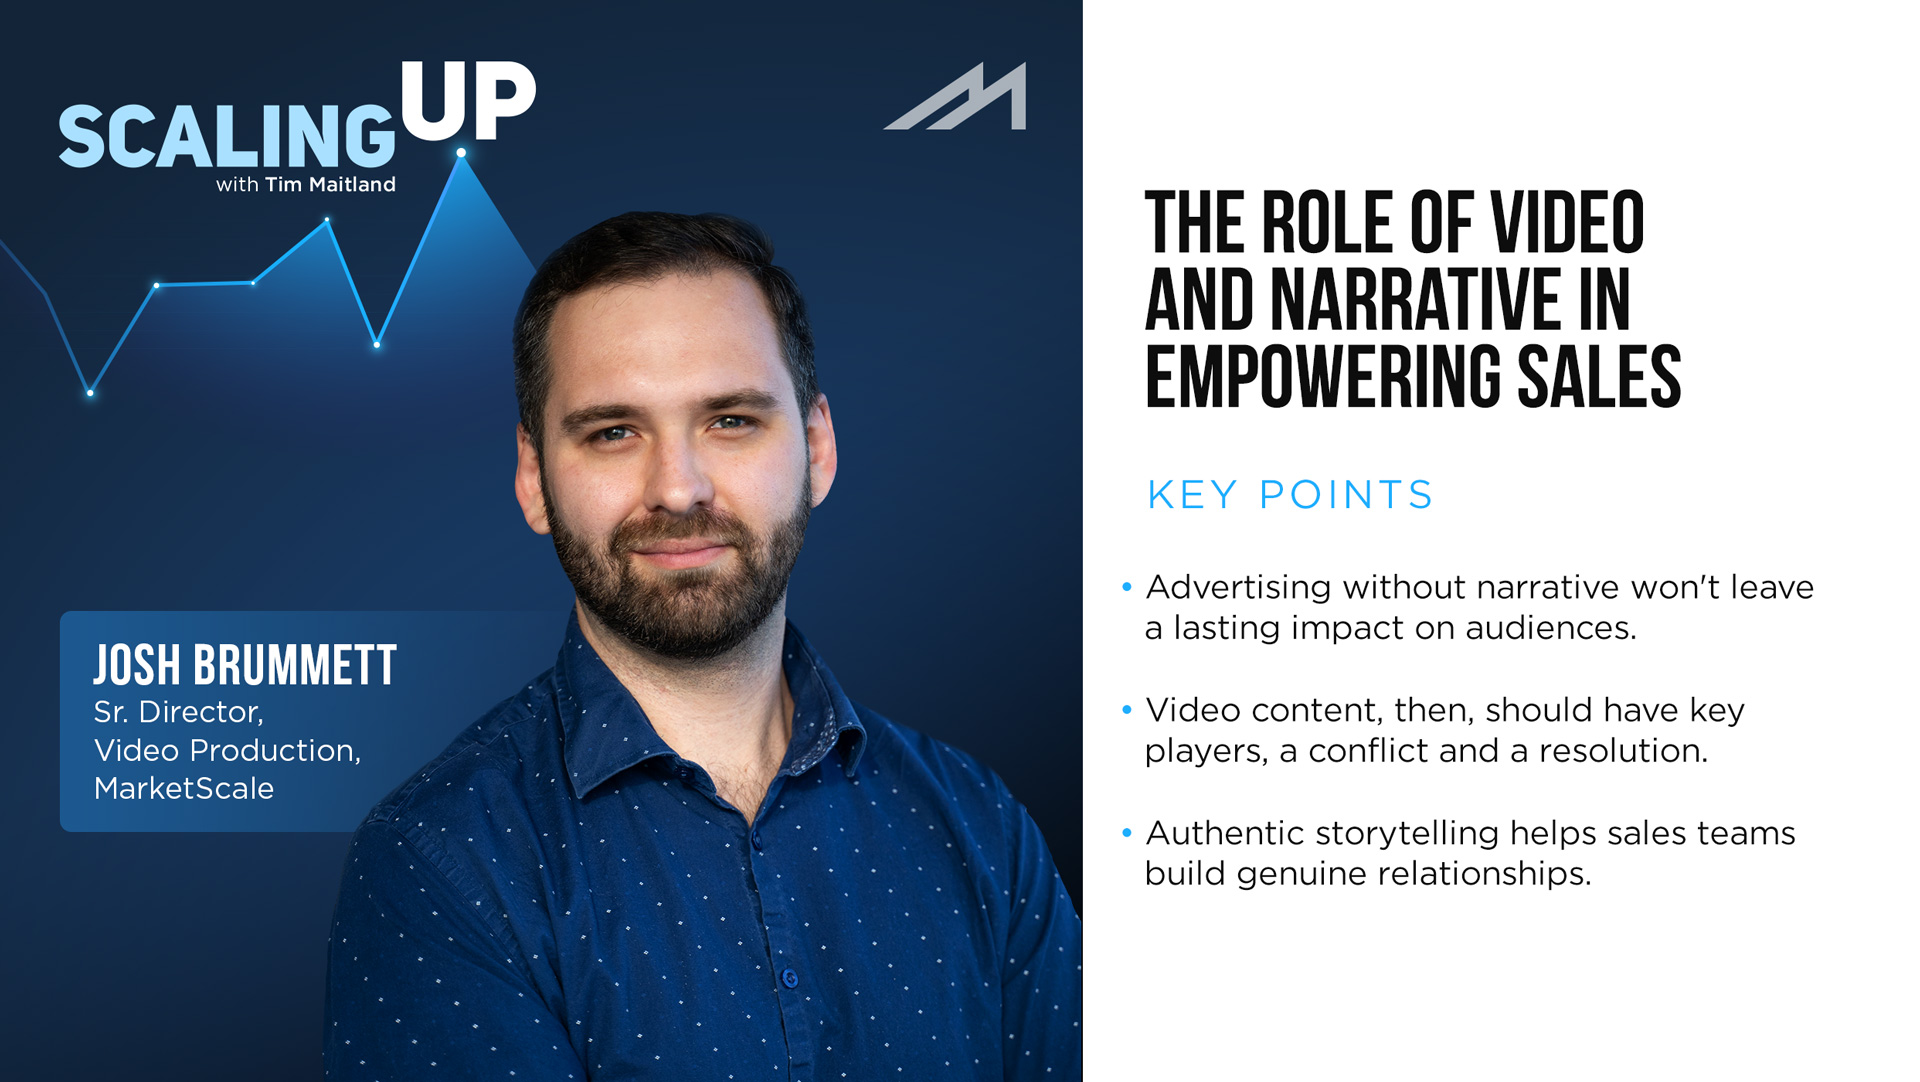 The Role of Video and Narrative in Empowering Sales